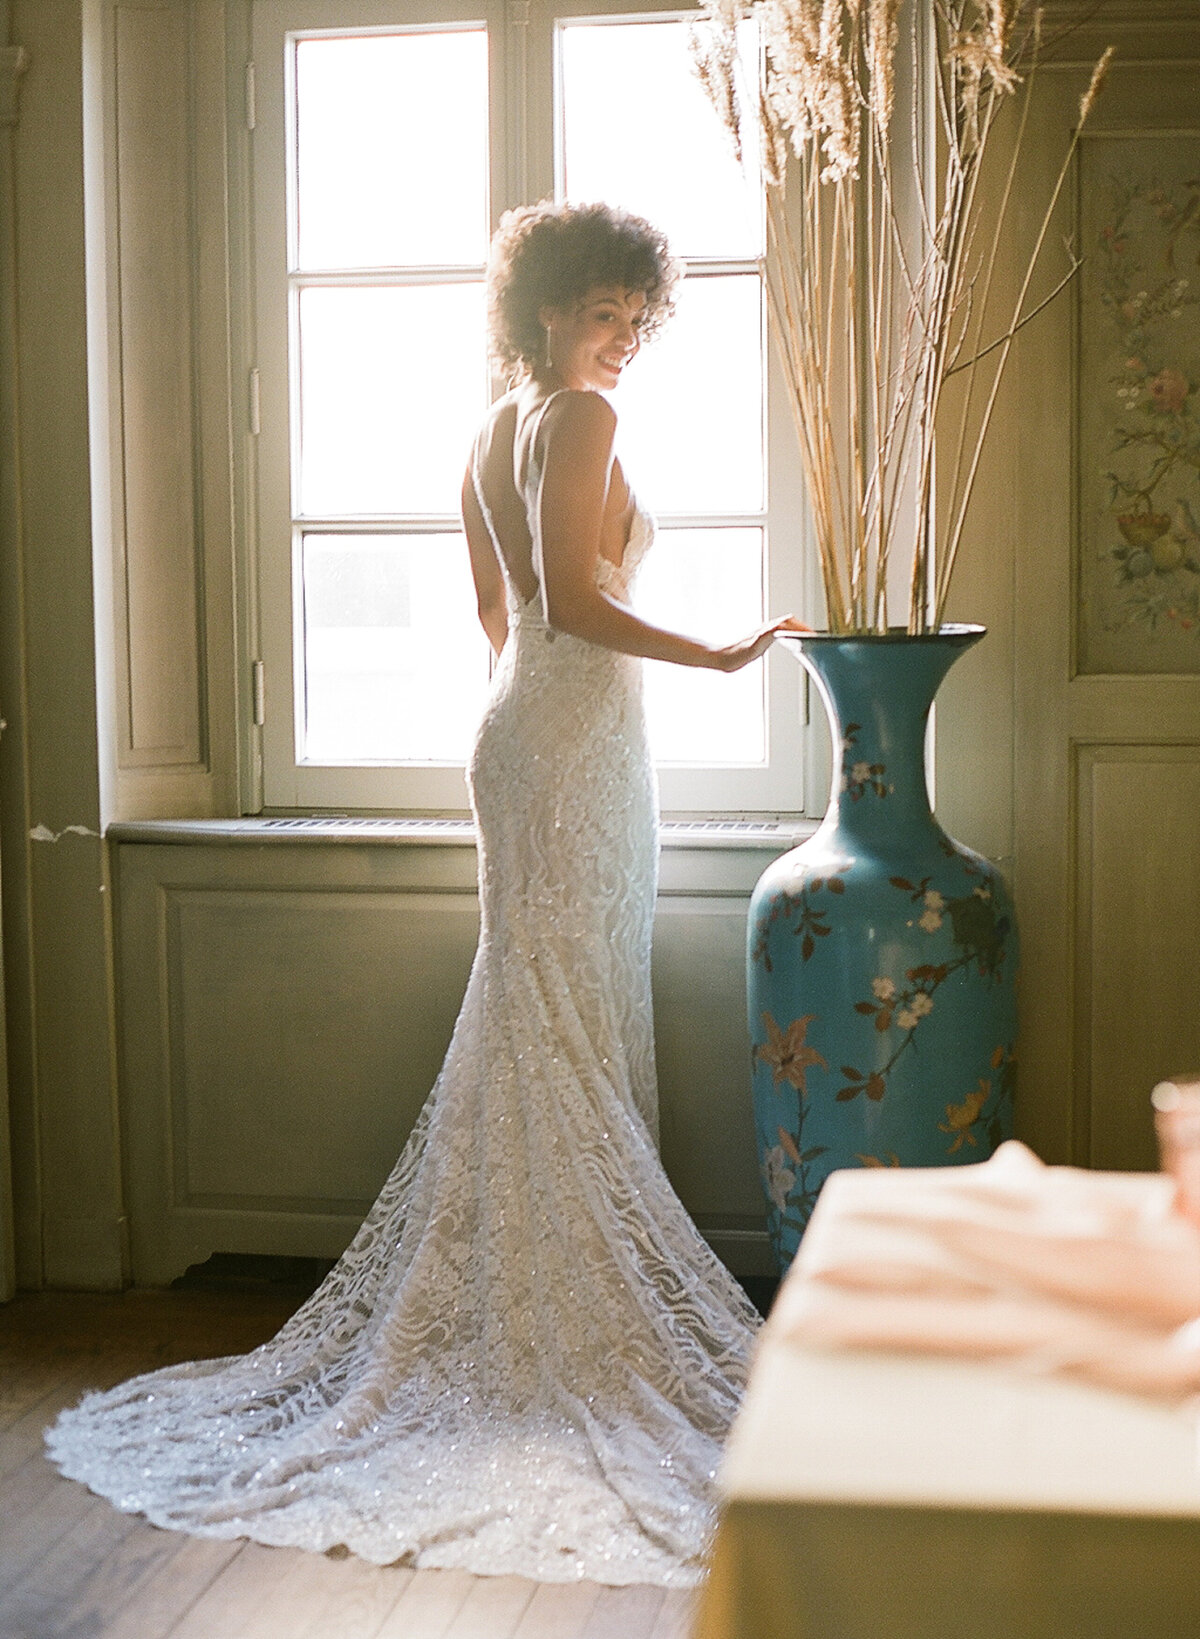 Bride posing in window after destination wedding